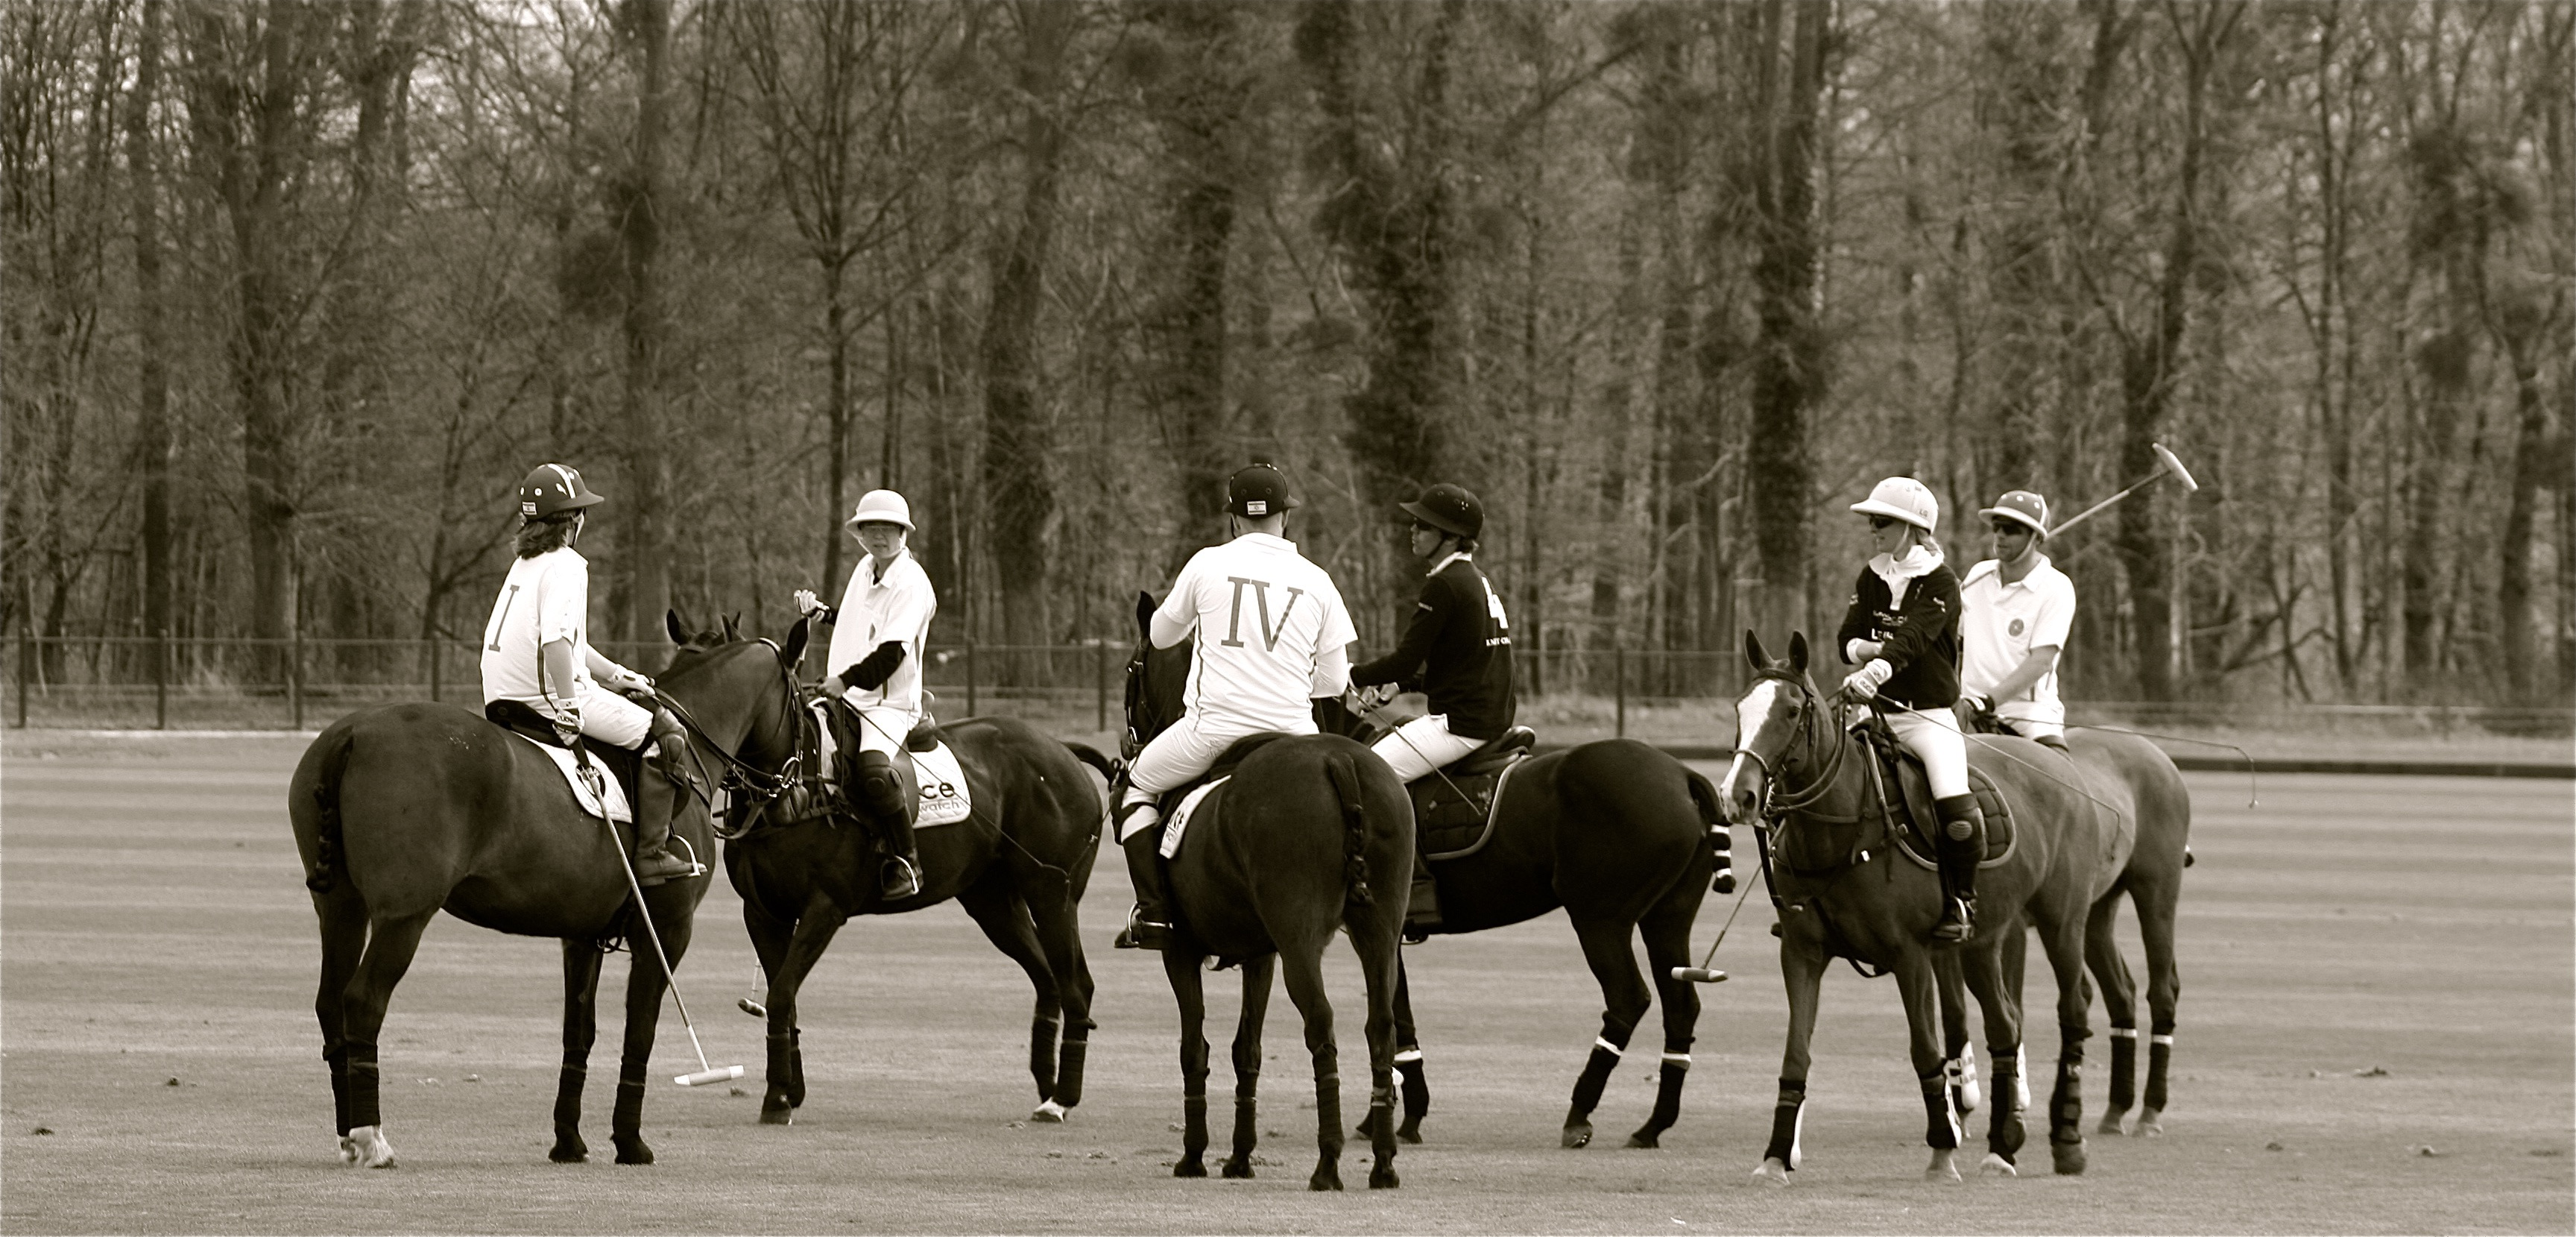 POLO IN APREMONT